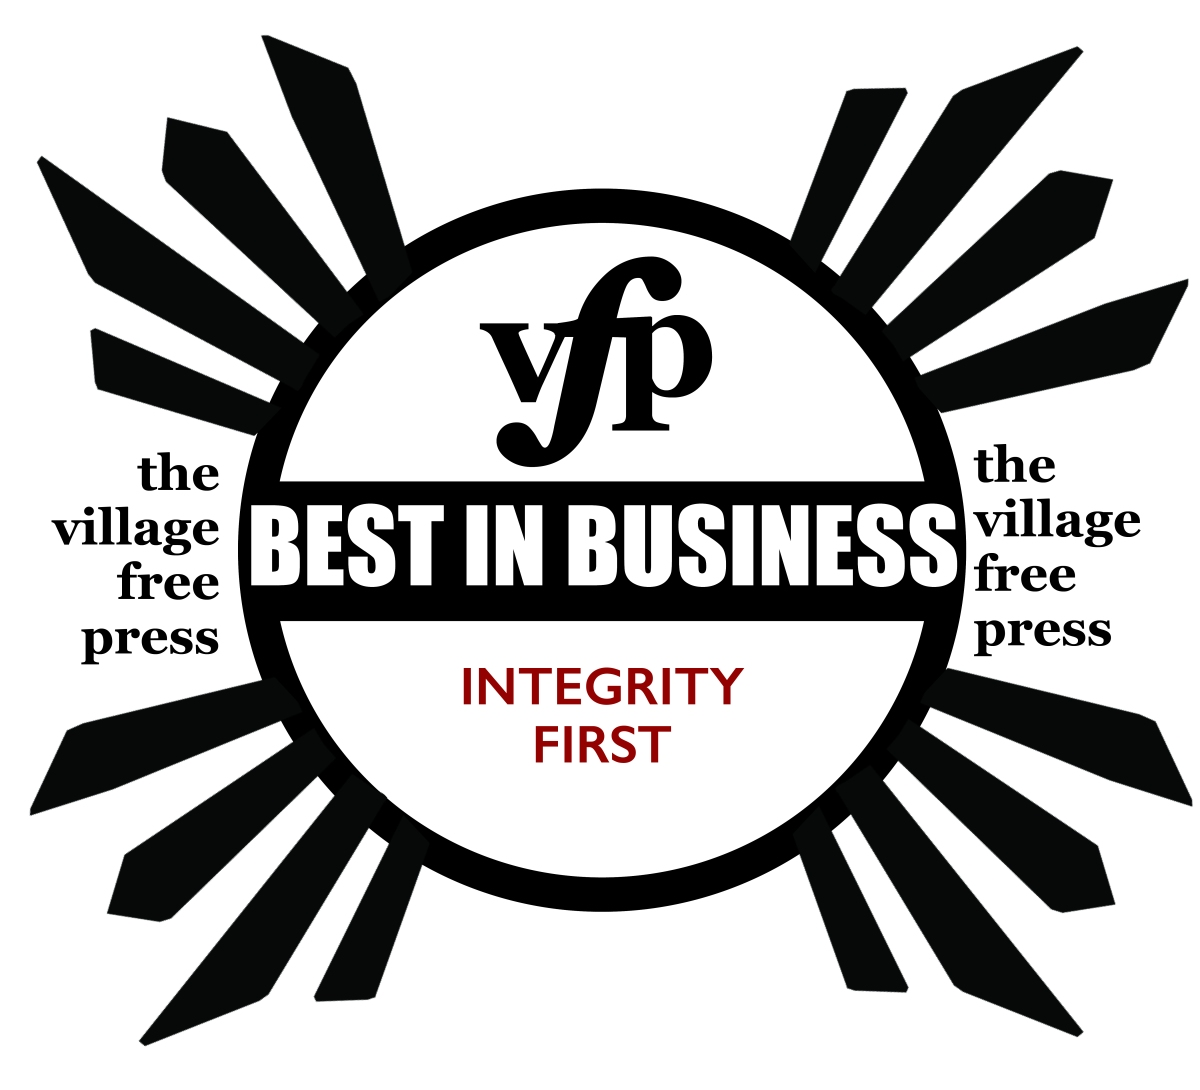 Vote for Our Small Business of the Month for August!